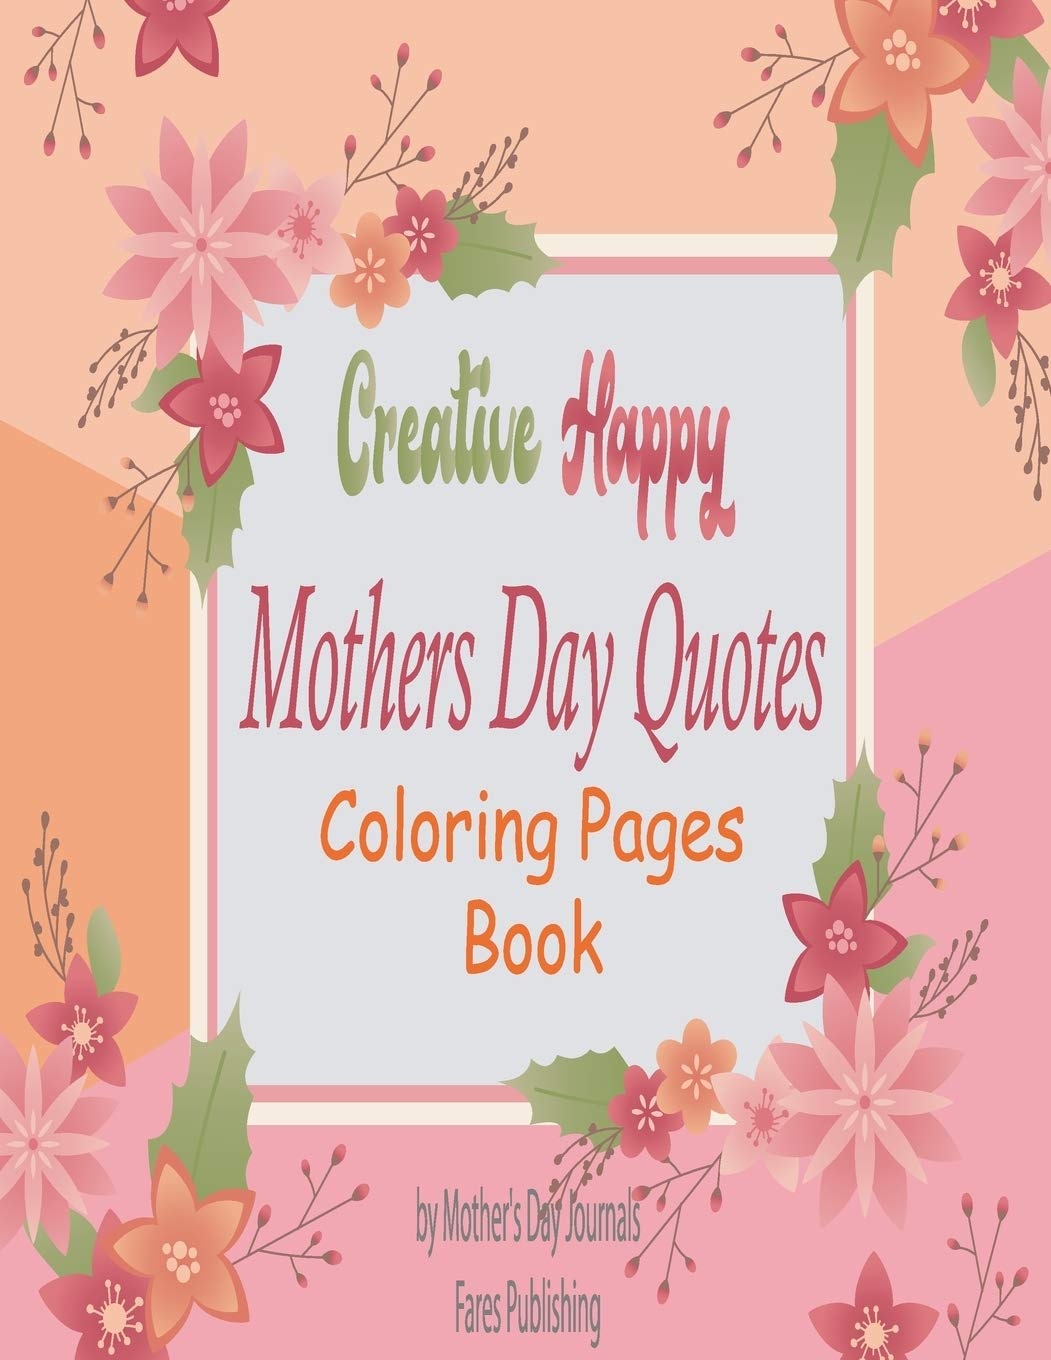 Creative Happy Mothers Day Quotes Coloring Pages Book Over 60 Pages Most Popular Mother S Day Quotes To Color Mother S Day Coloring Book Anti Stress Inches 15 24 Cm X 22 86 Cm Paperback Fares